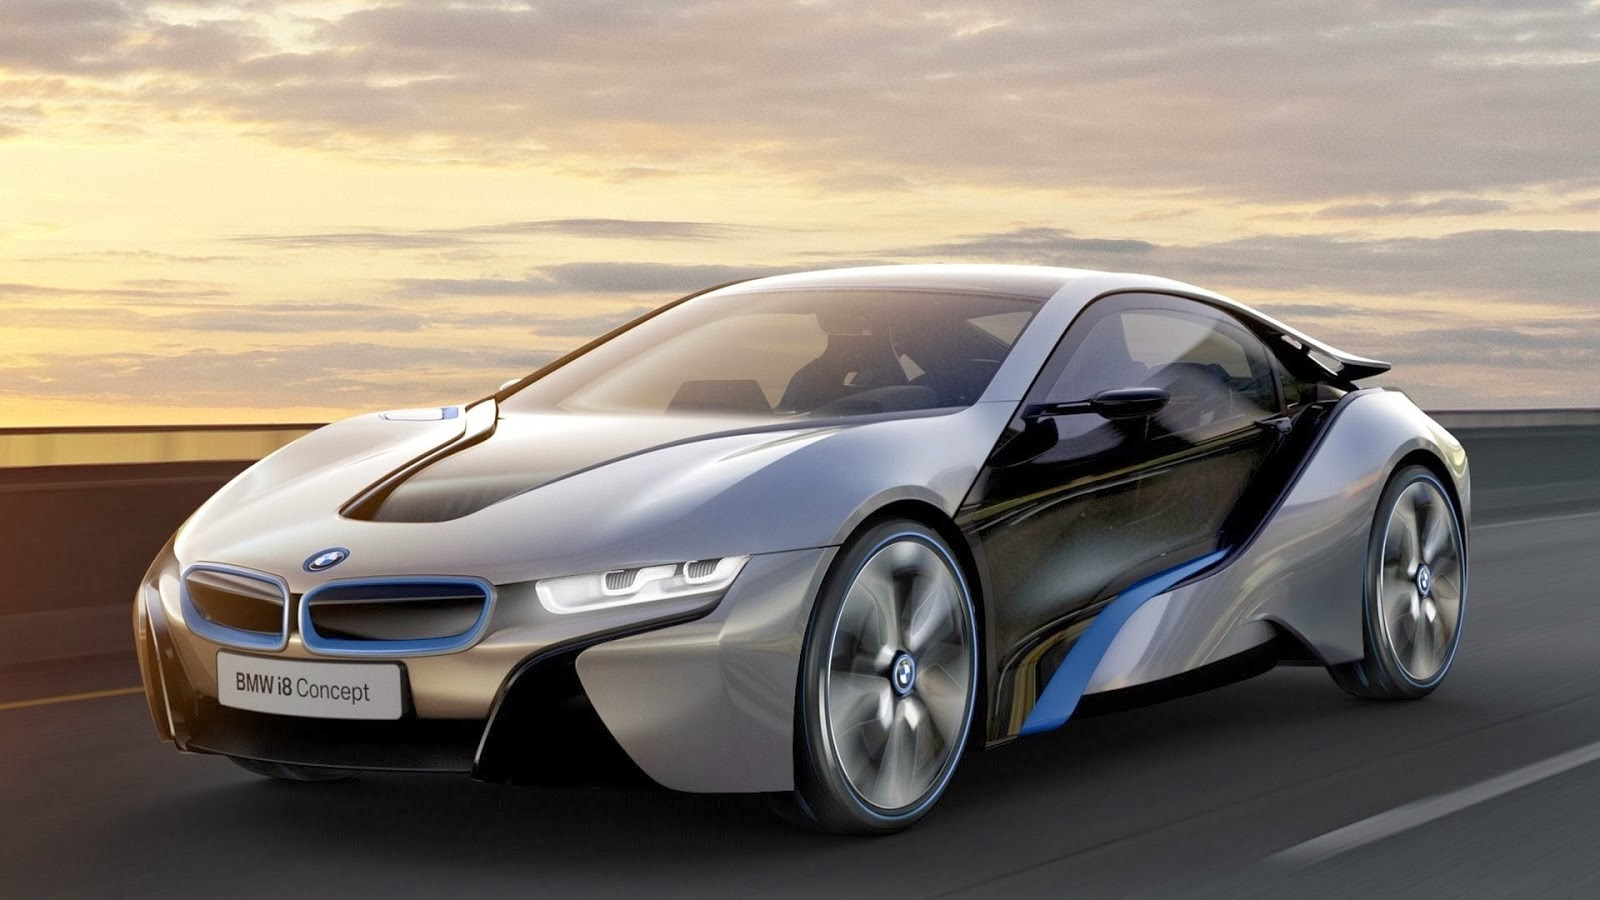 hd wallpapers download bmw i8 cars hd wallpapers 1080p. Black Bedroom Furniture Sets. Home Design Ideas